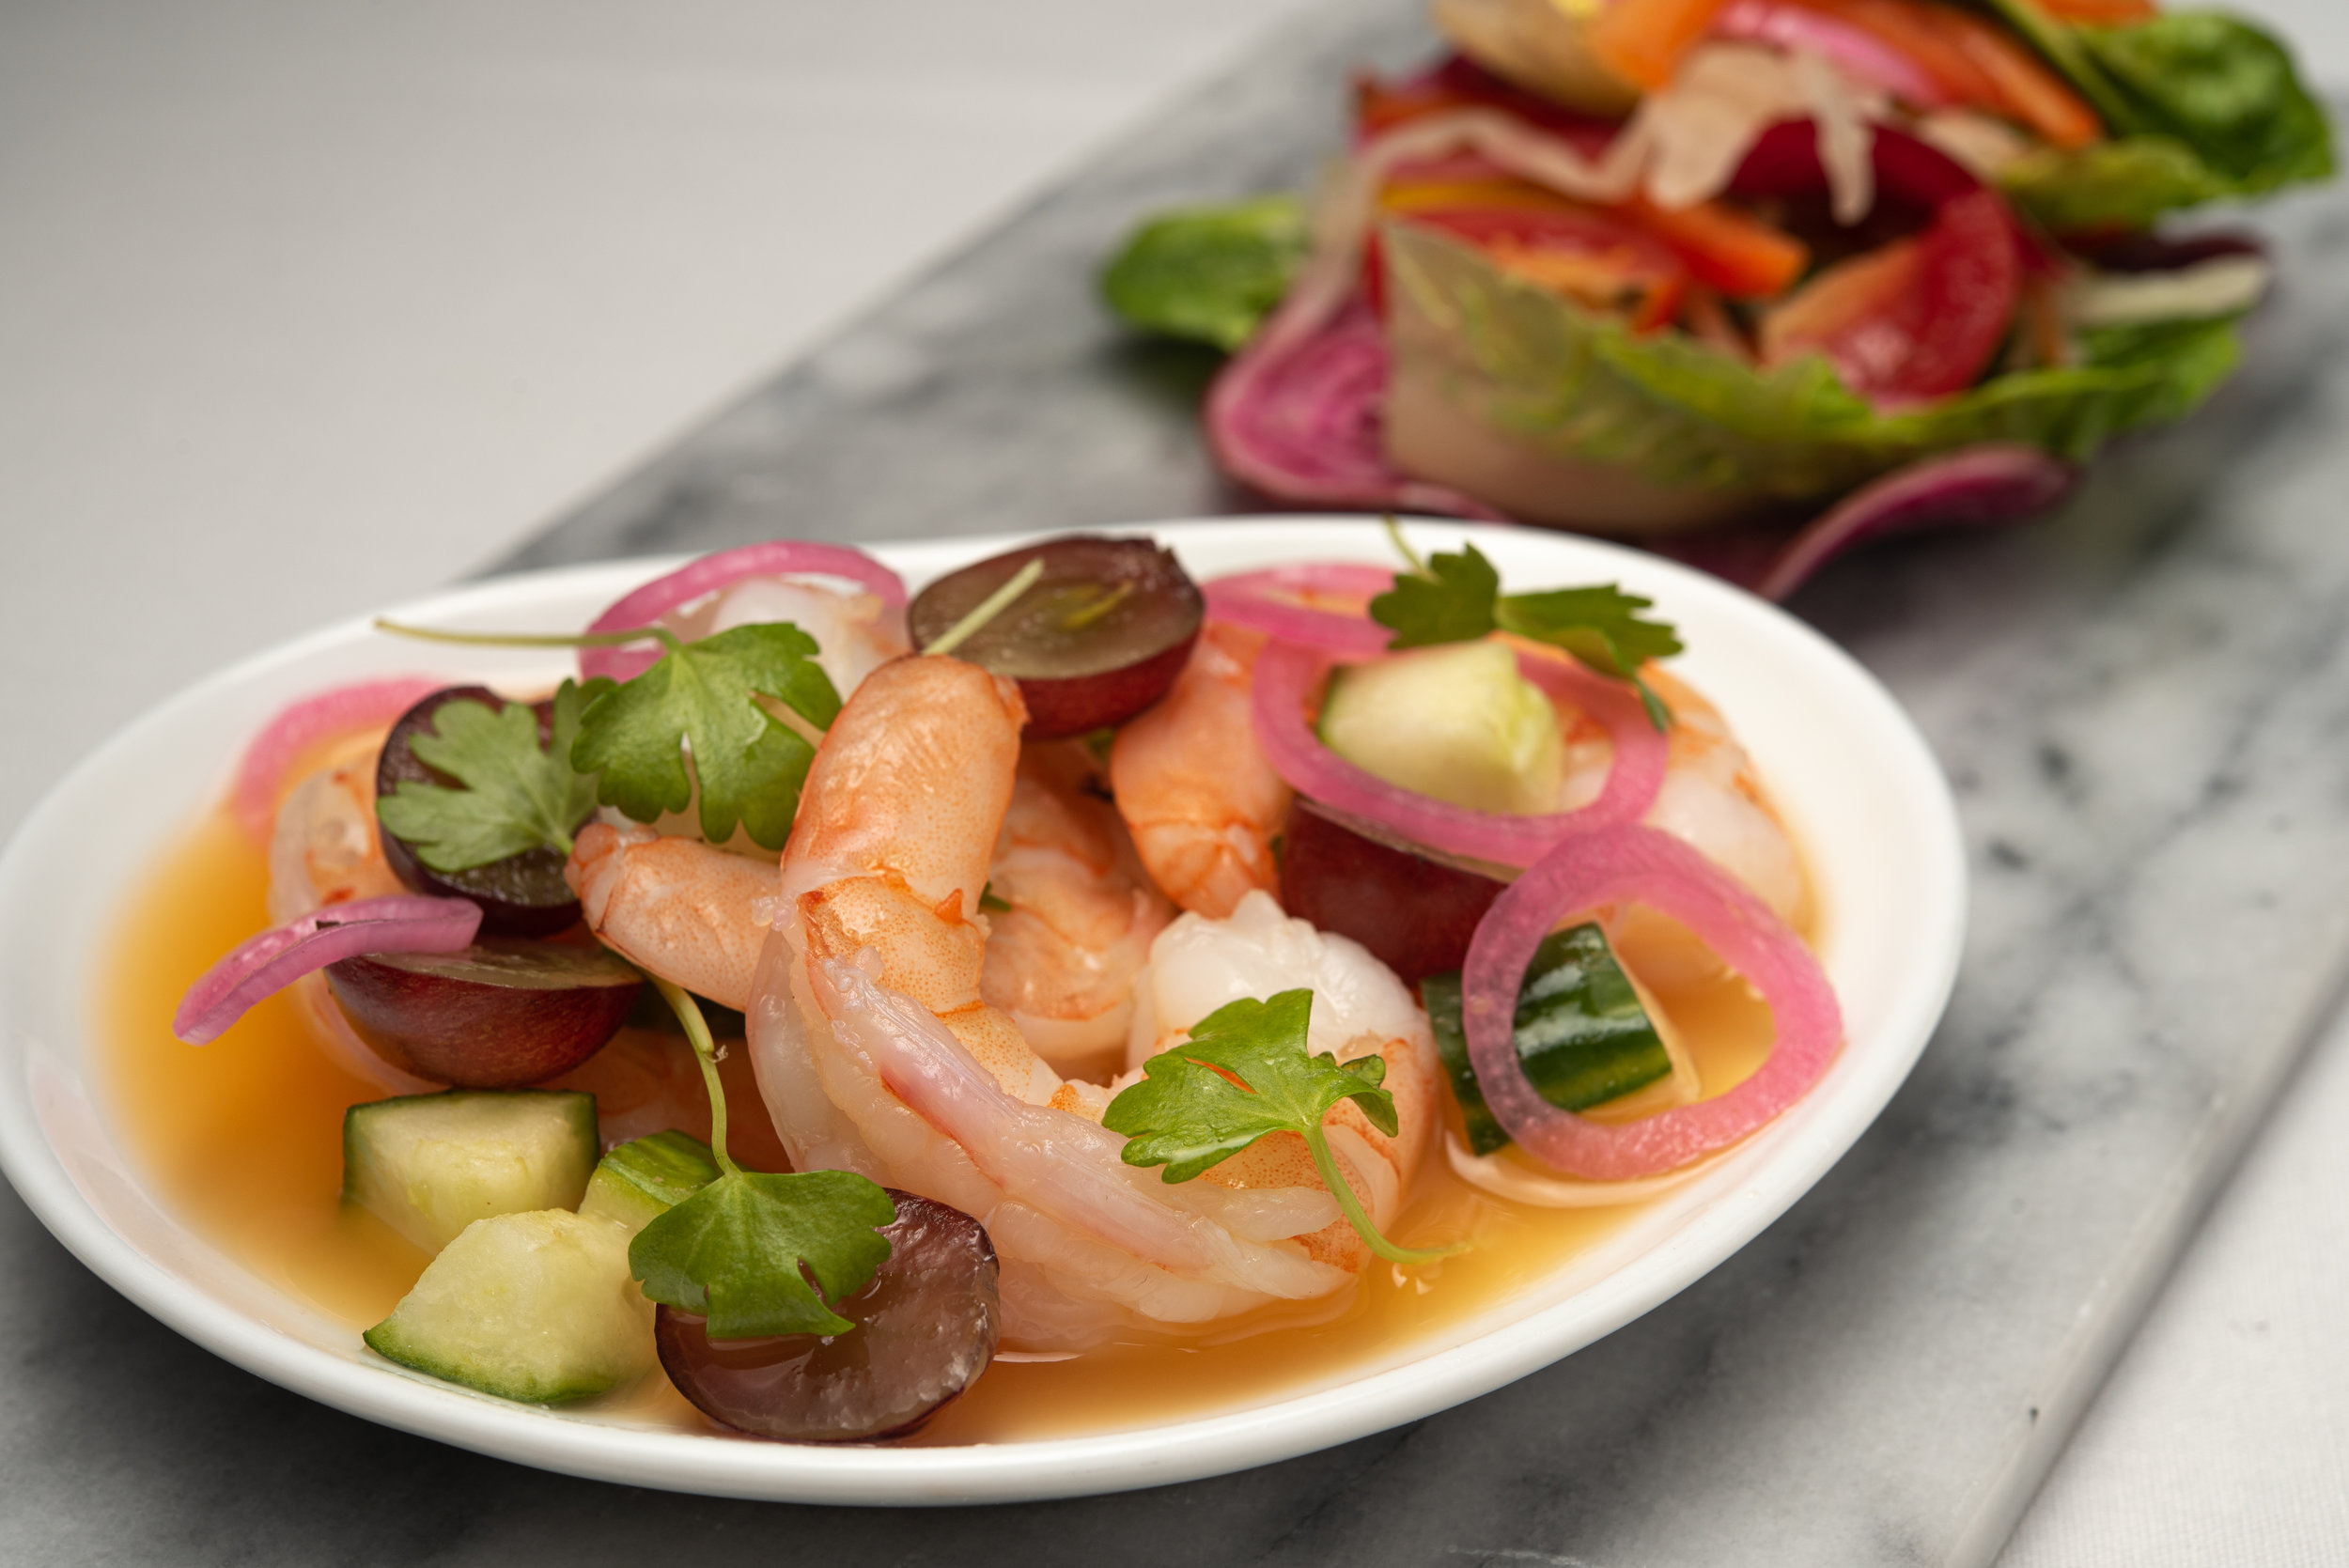 Shrimp Aqua Chili & Greens_Marinated Shrimp, Cucumber, Grapes, Blood Orange, Gem Lettuce, Peppers, House Fermented Veget.jpg